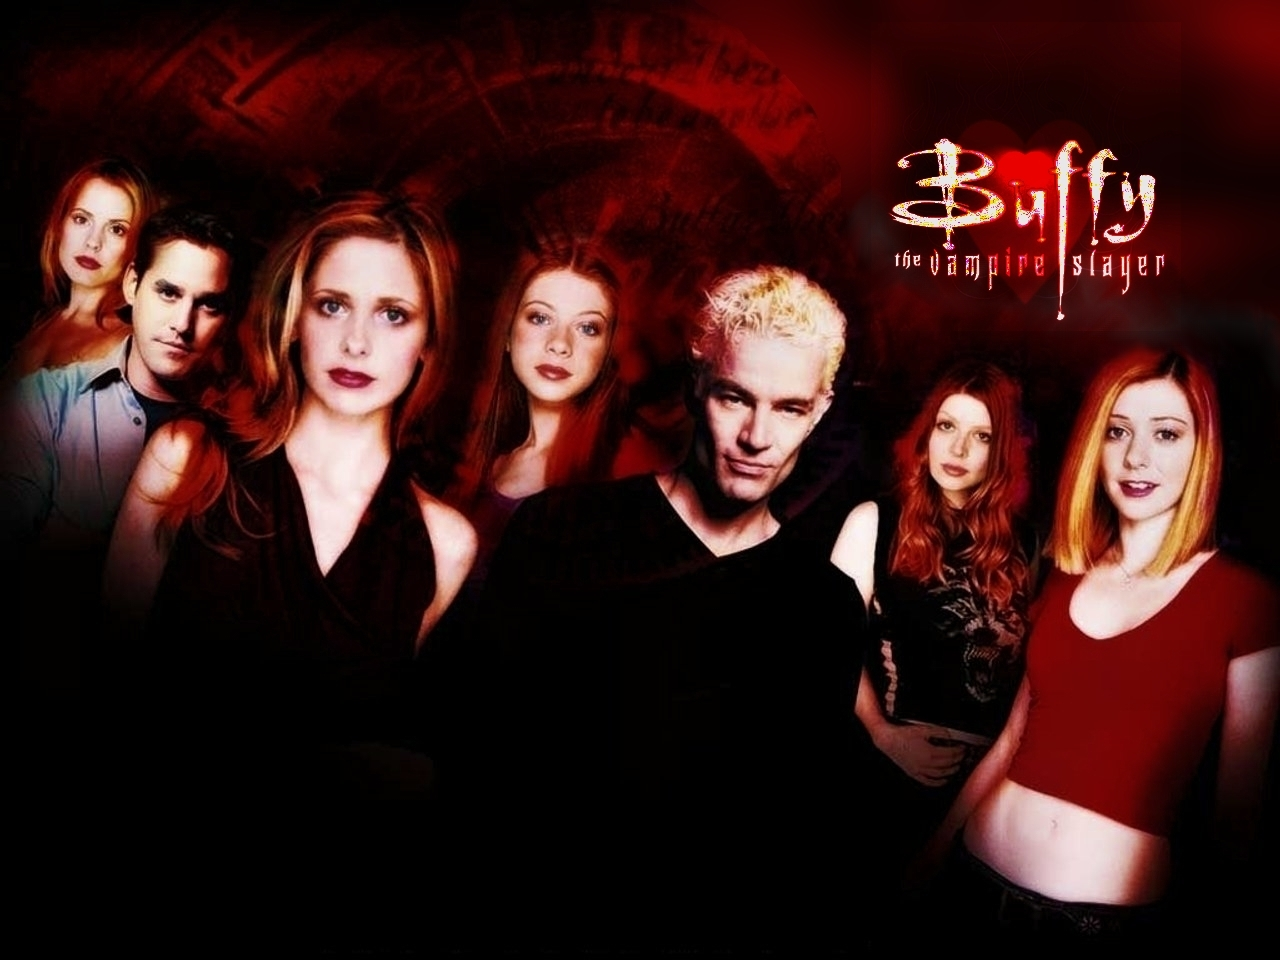 http://4.bp.blogspot.com/-8drP_JABH94/T8JM83FiUcI/AAAAAAAAMBo/_EwCbKYjHd0/s1600/Buffy_the%2529vampire_slayer_tv_wallpaper_1280x960.jpg